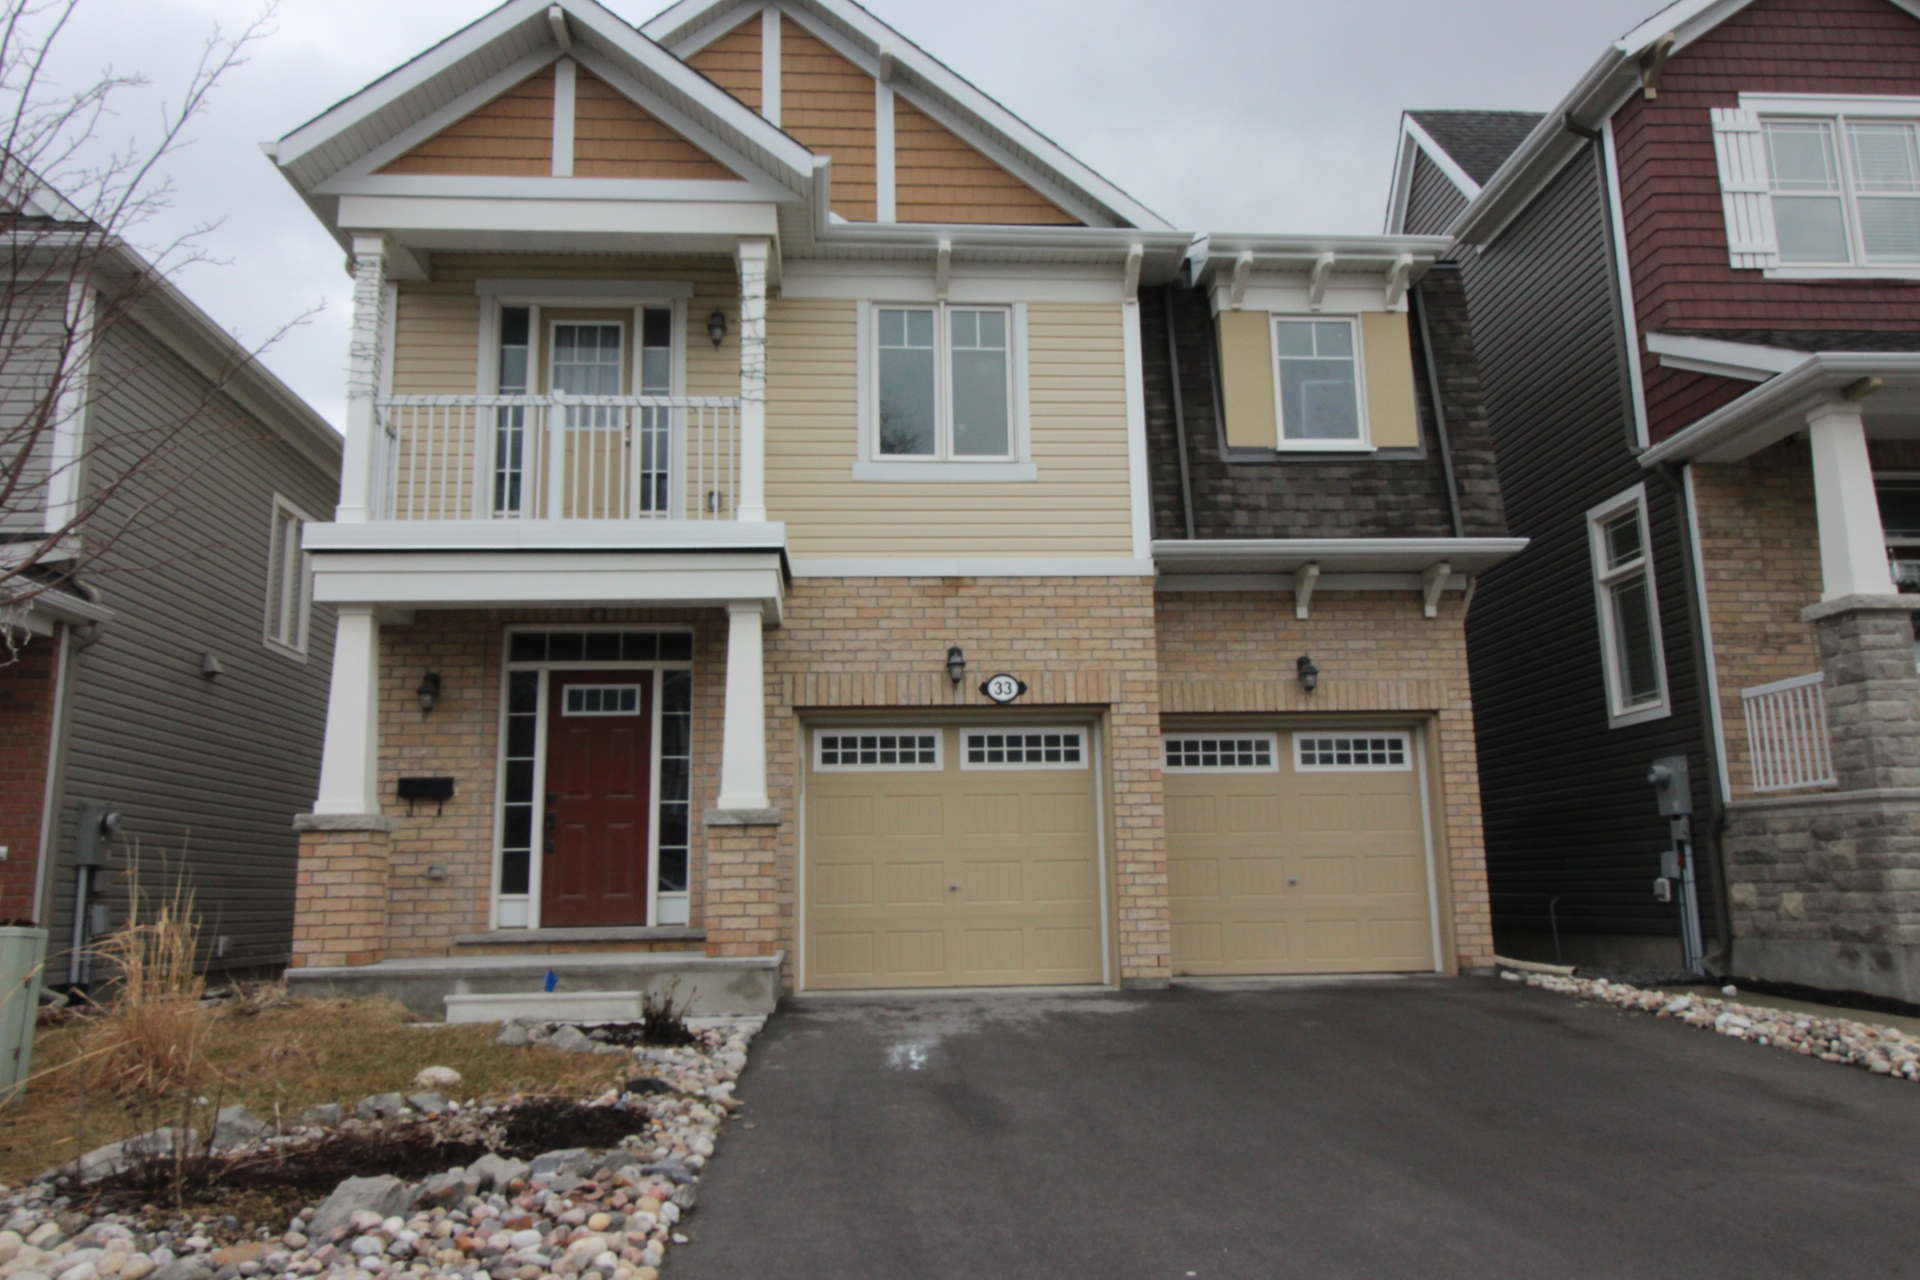 33 Summitview Dr - Exclusive Listing in Beautiful Emerald Meadows - Kanata!